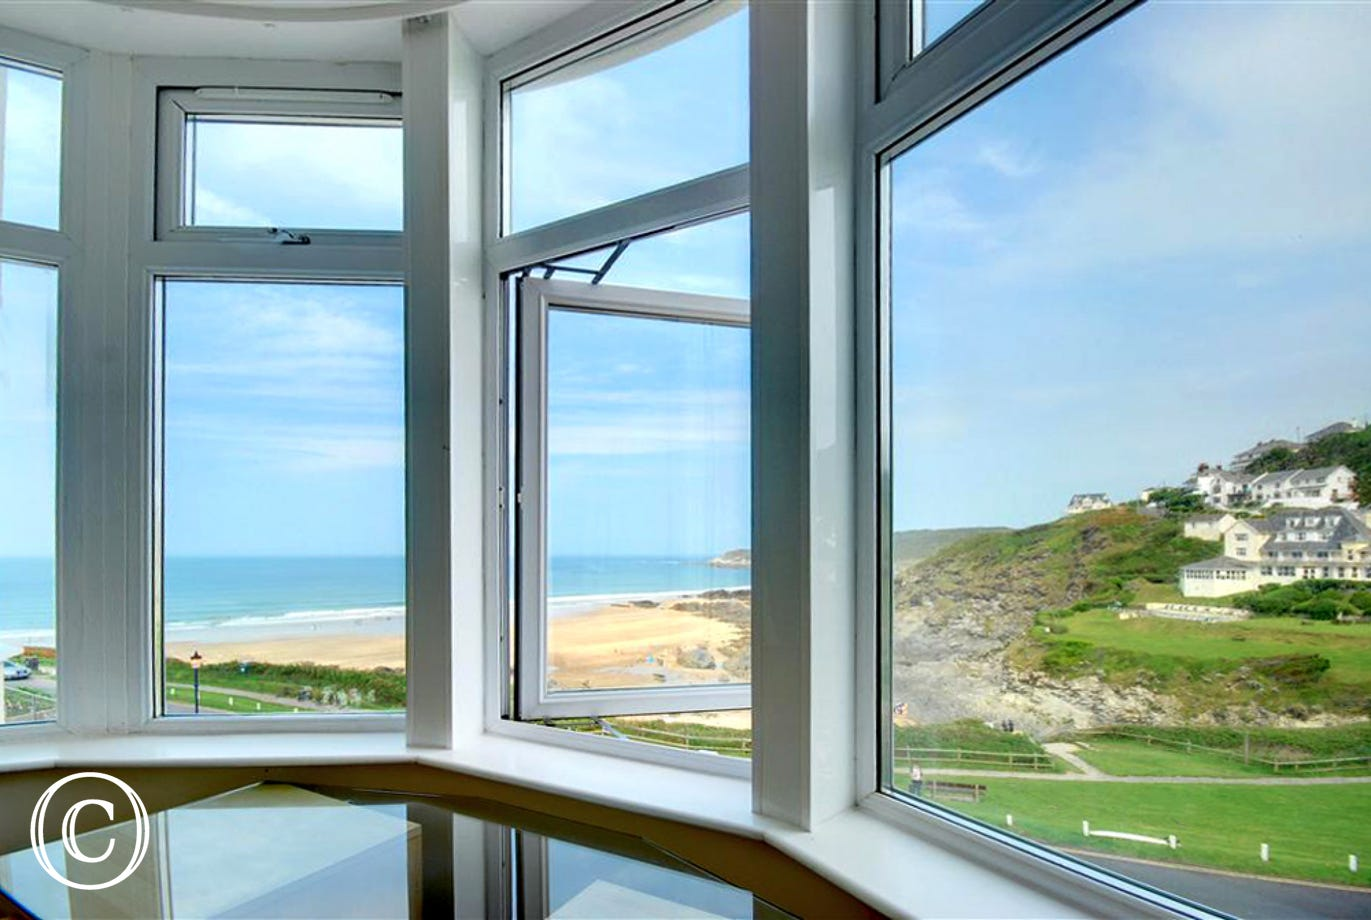 Enjoy the beautiful views from the big bay windows